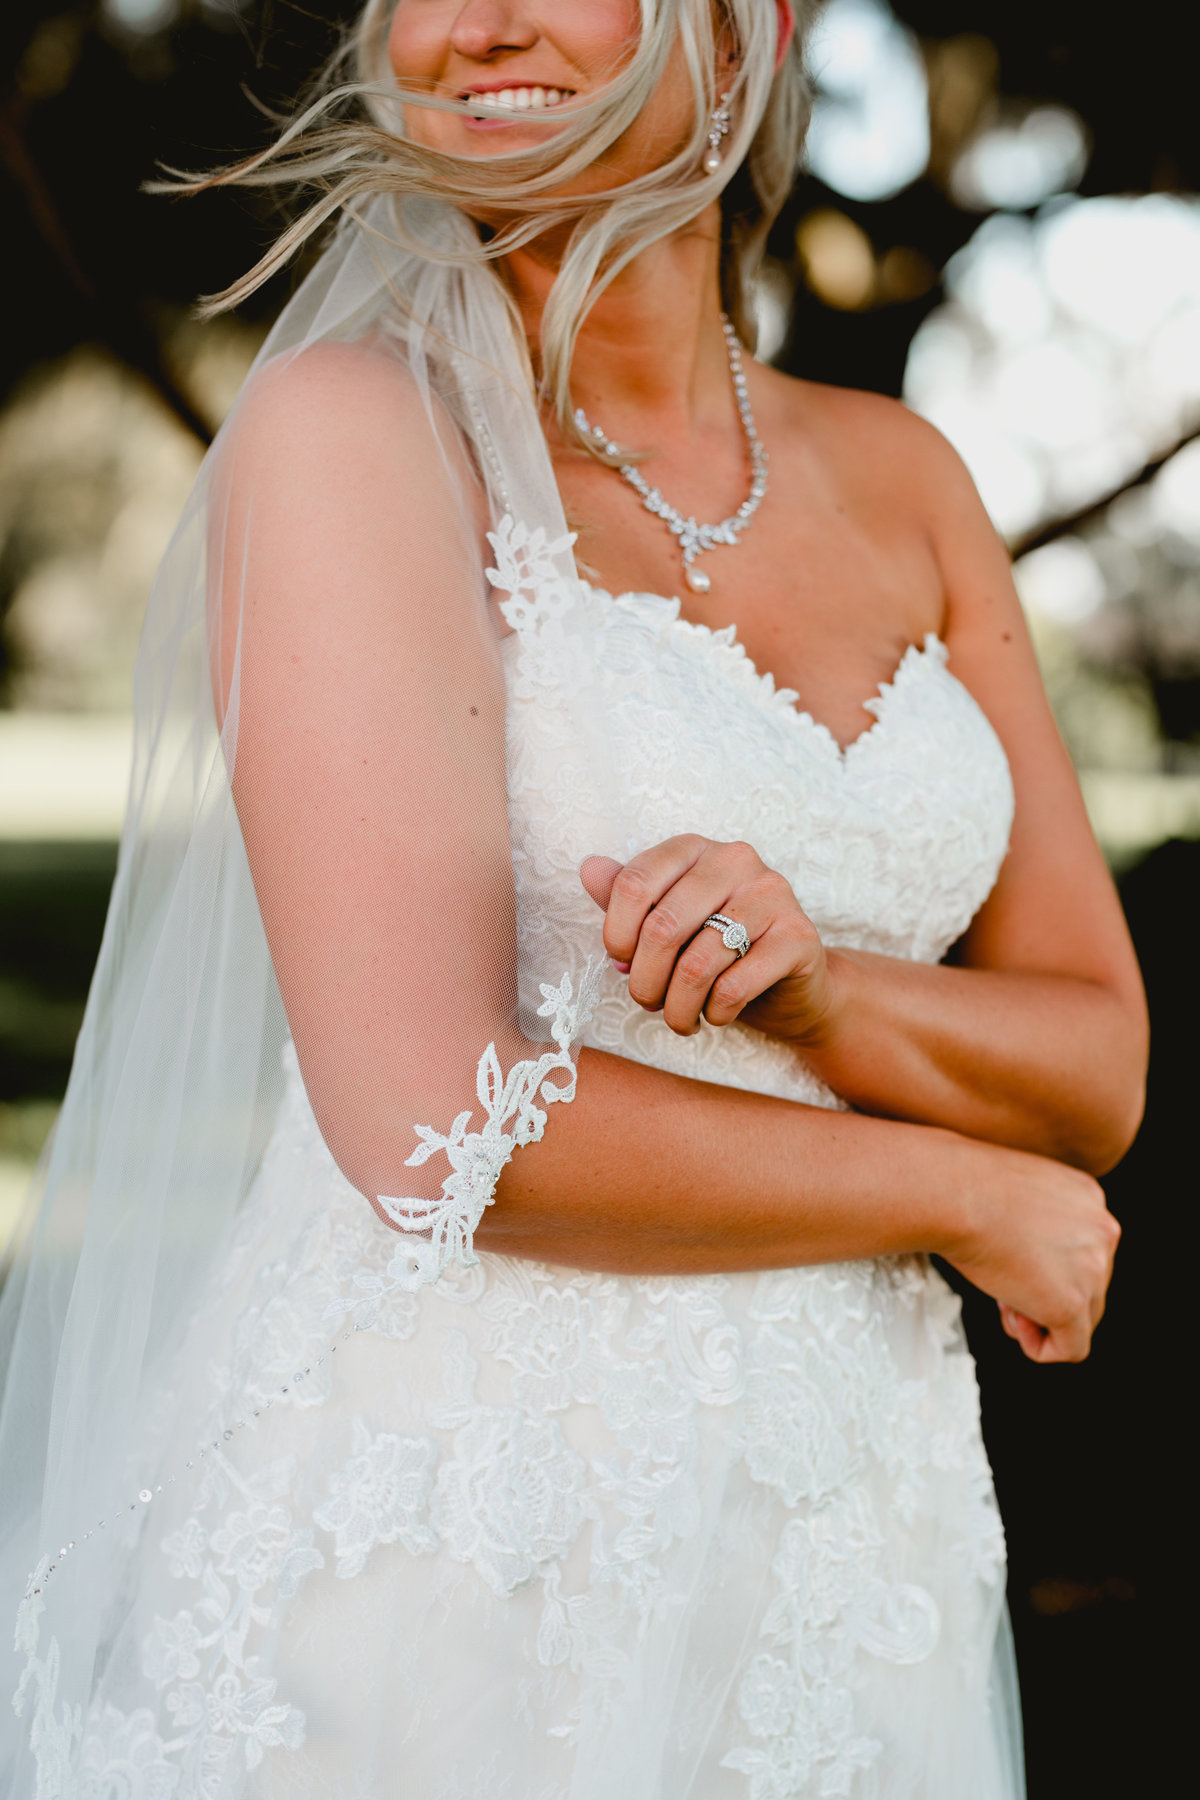 Beautiful bride takes bridal portraits with professional photographer in Florida.